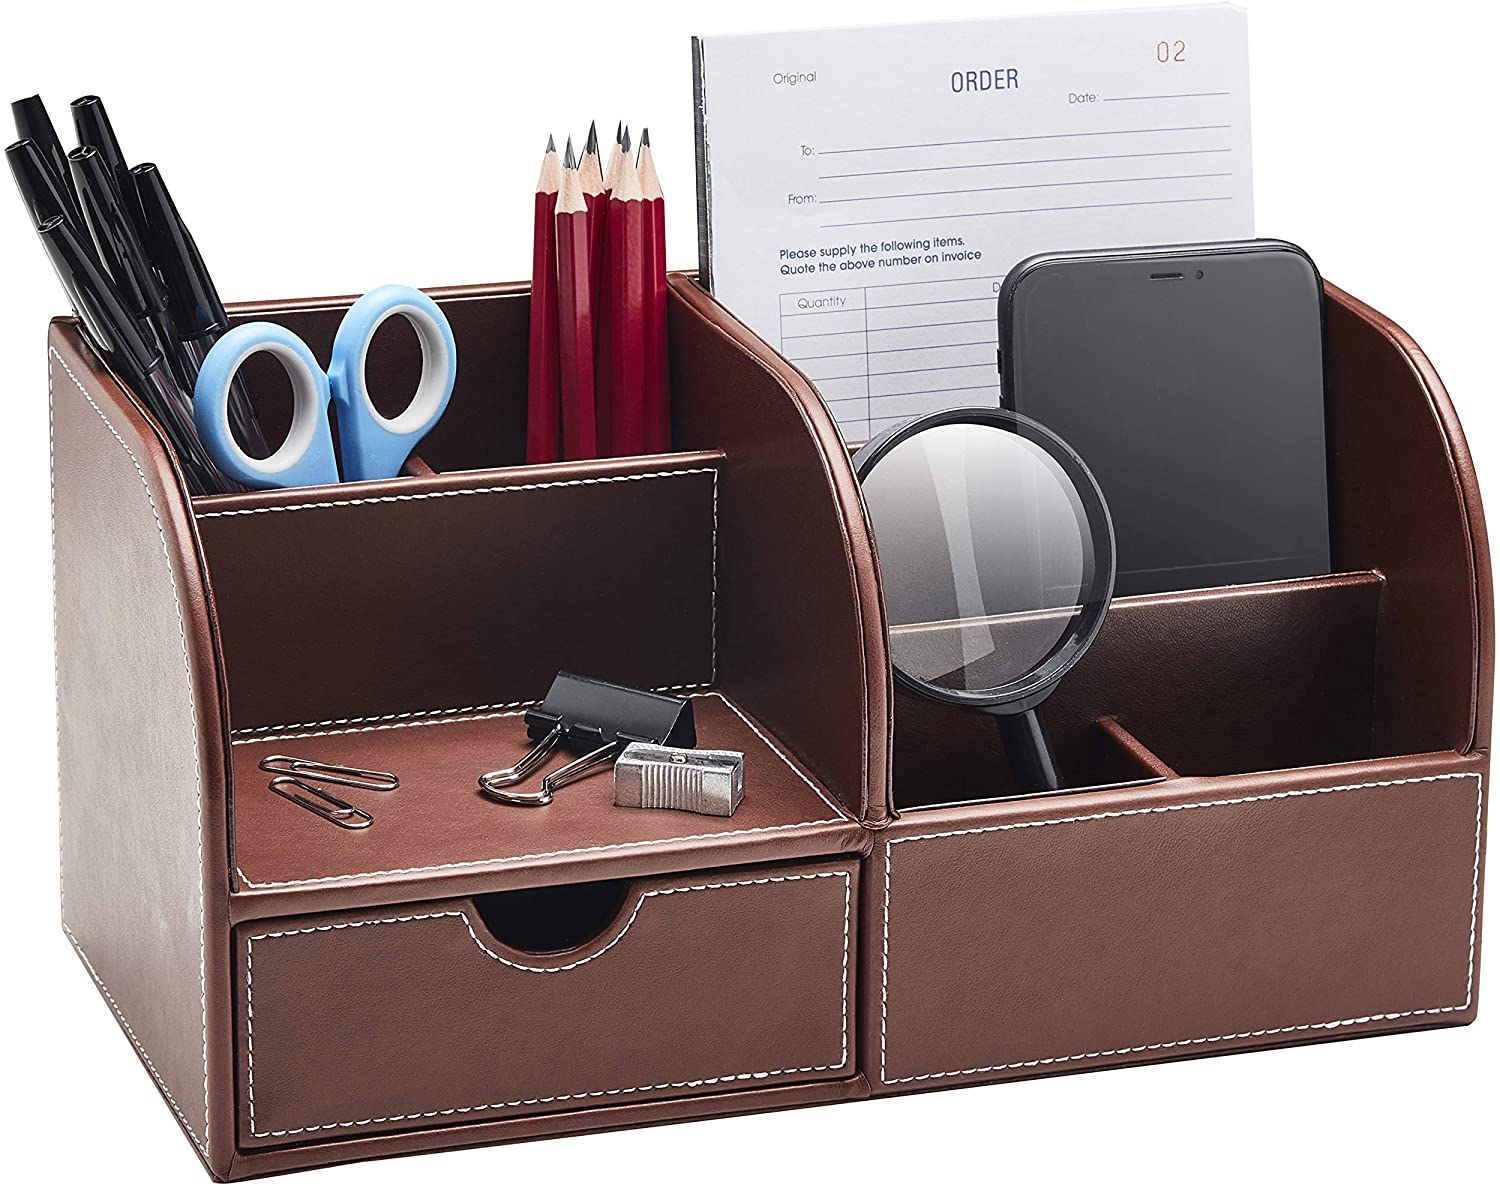 Gallaway Leather Desk Organizer - Office Stationery Storage Box Organizer, Holds Desk Supplies Like Business Card, Pen, Pencil Mobile Phone, Office Accessories (Brown)…